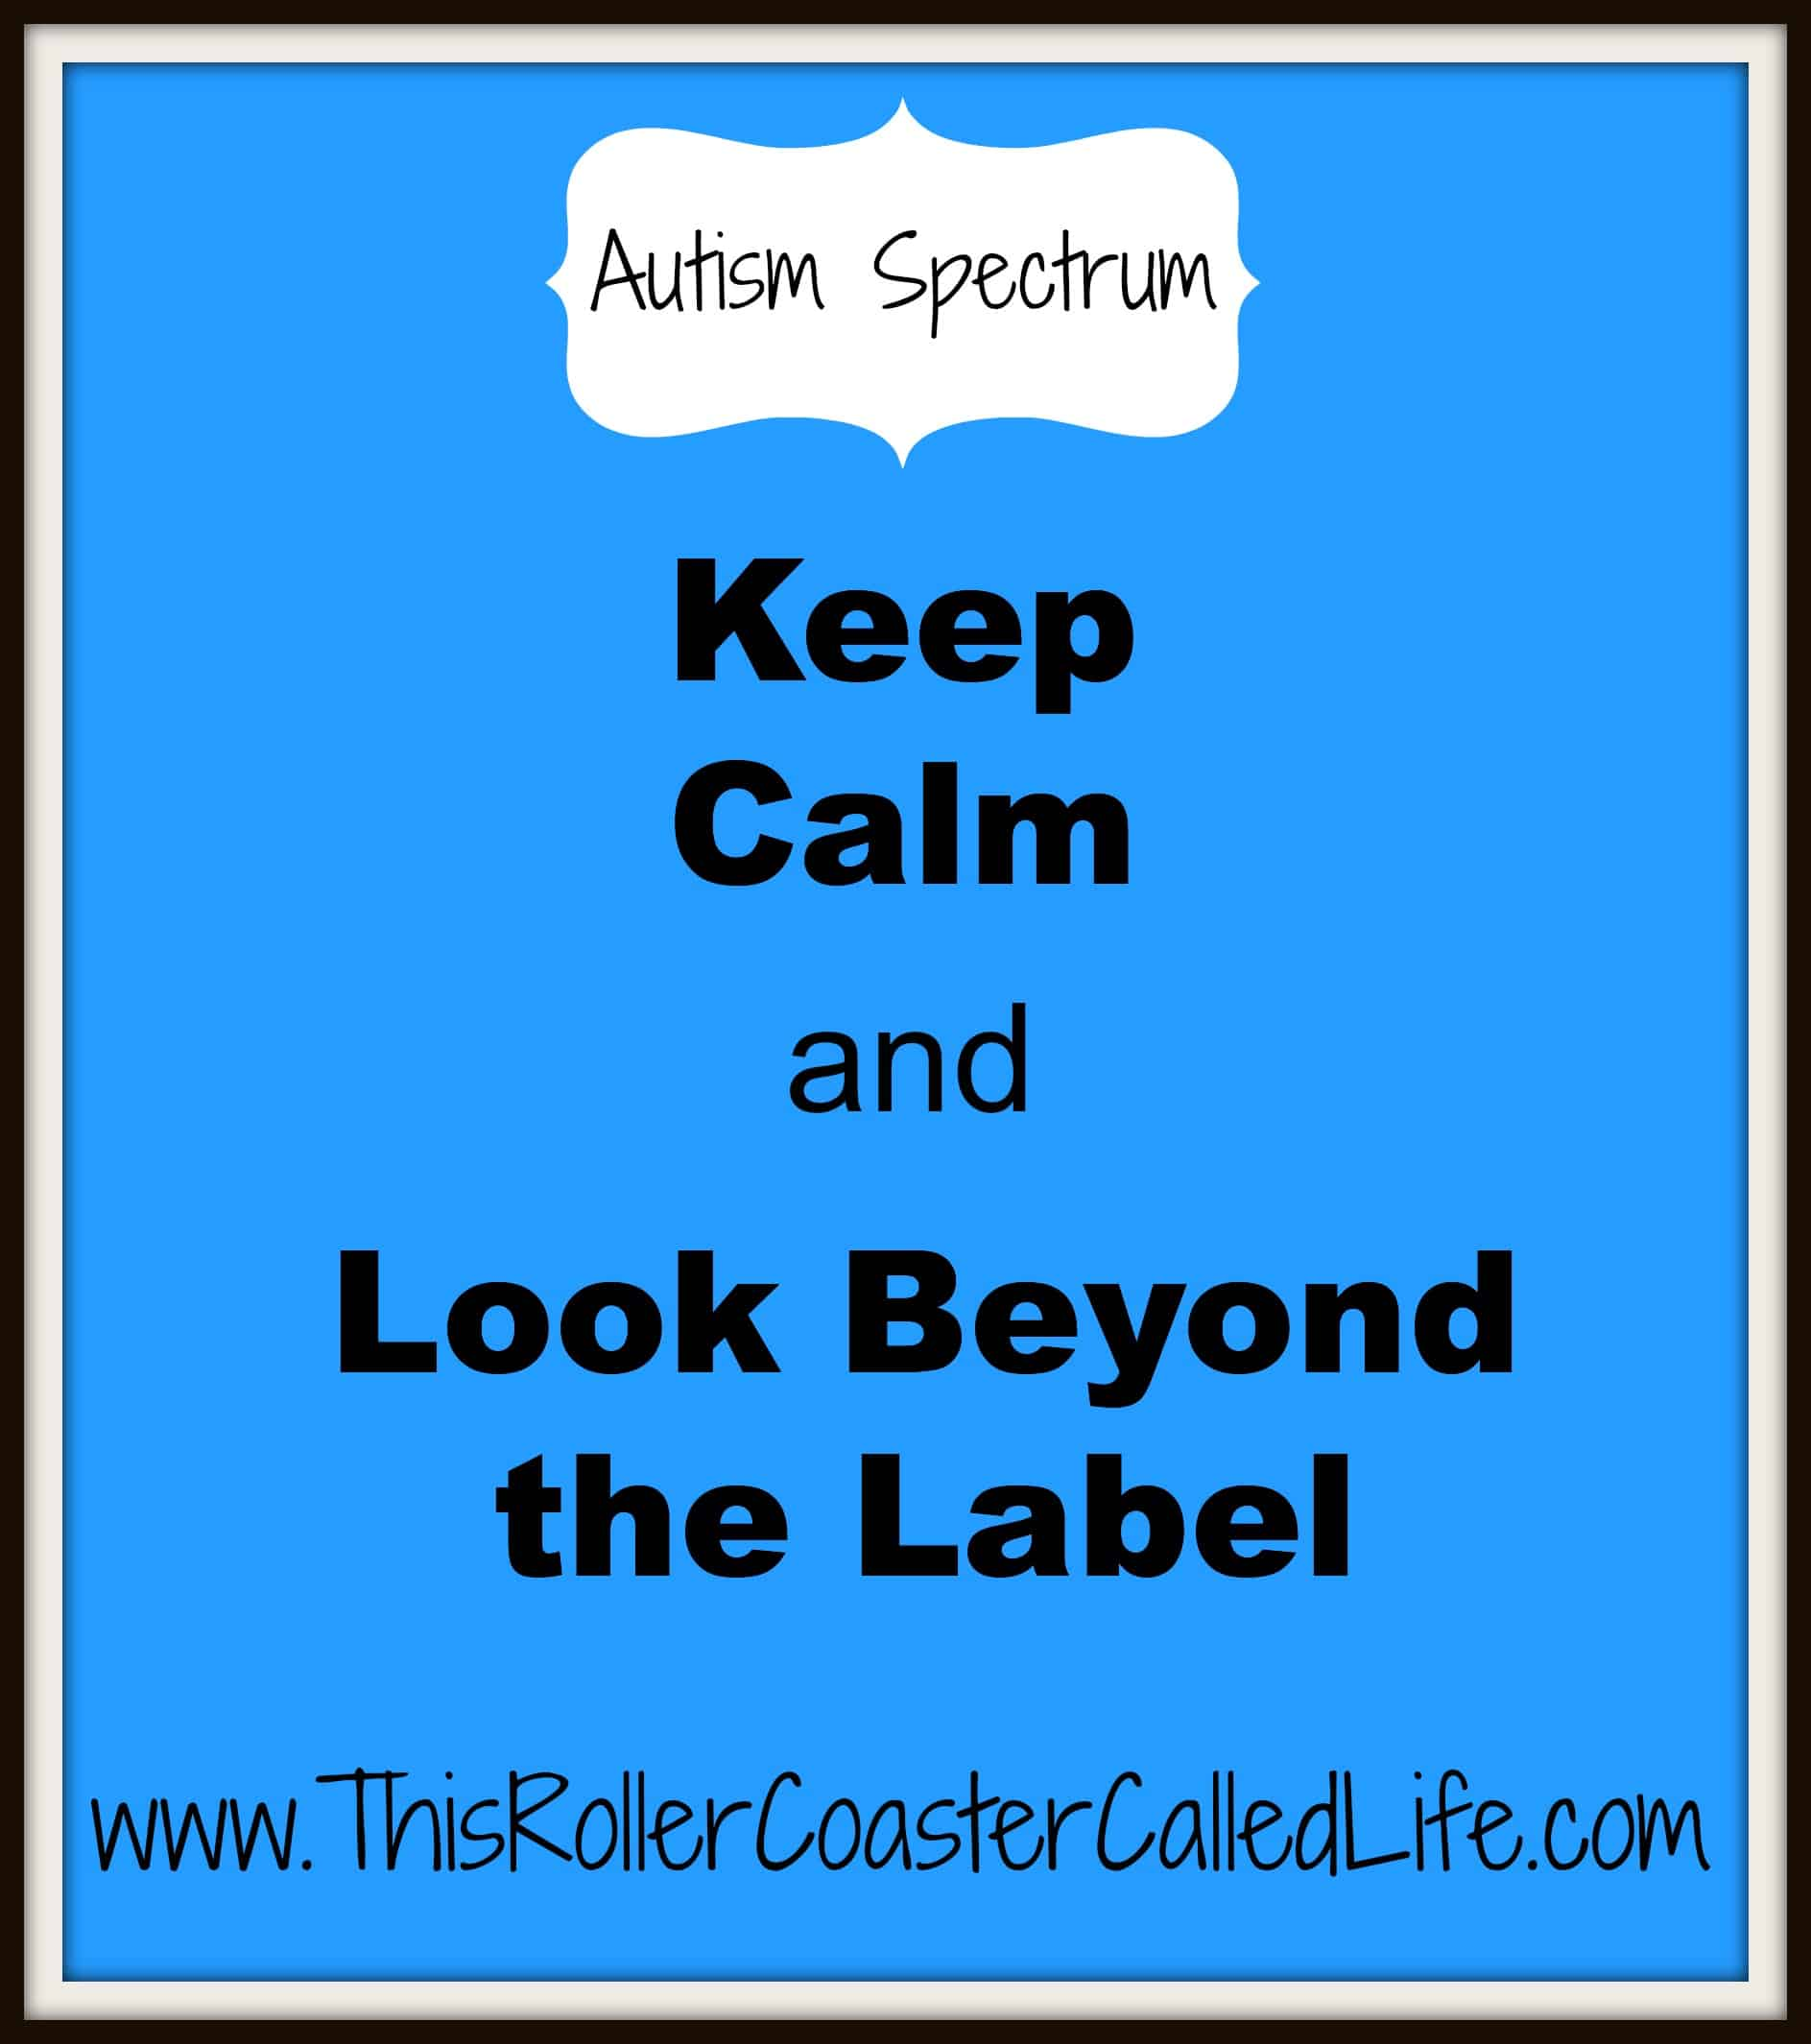 Keep Calm and Look Beyond the Label